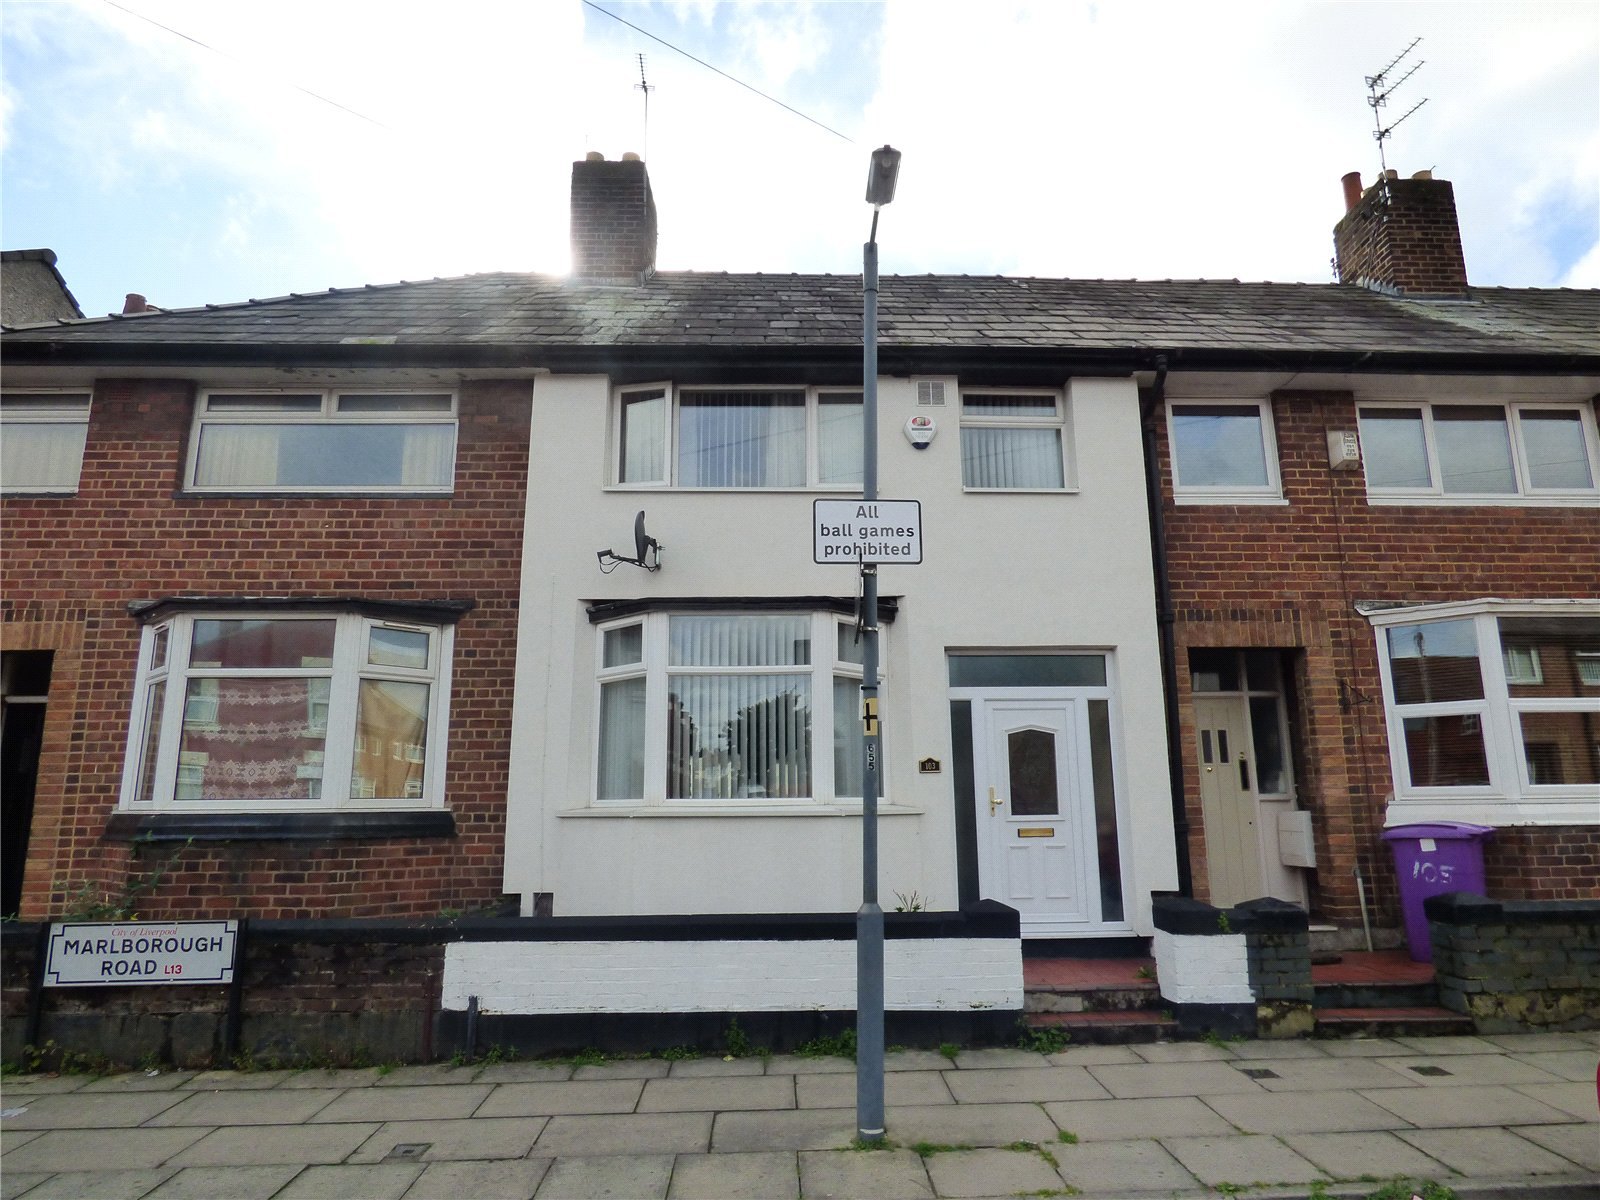 3 Bedrooms Terraced House for sale in Marlborough Road, Tuebrook, Liverpool, Merseyside, L13